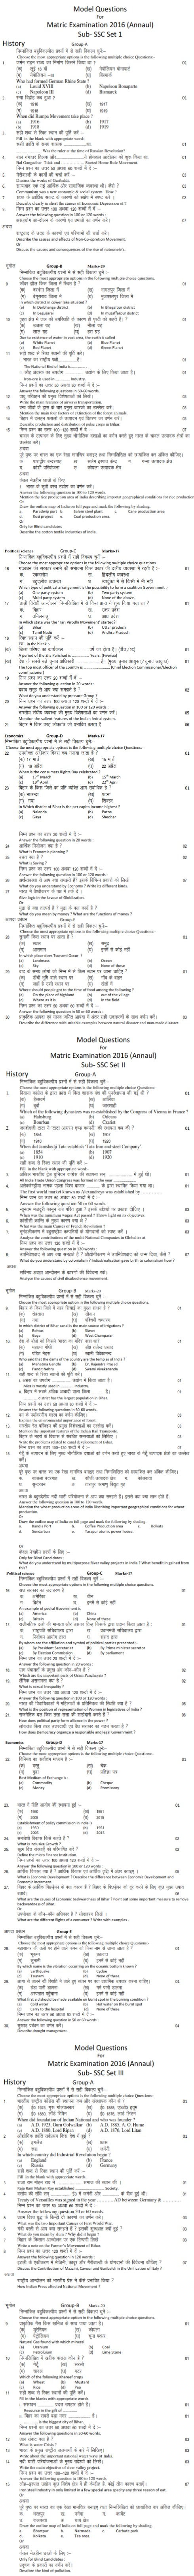 Bihar Board Class X Model Question Papers - Social Science